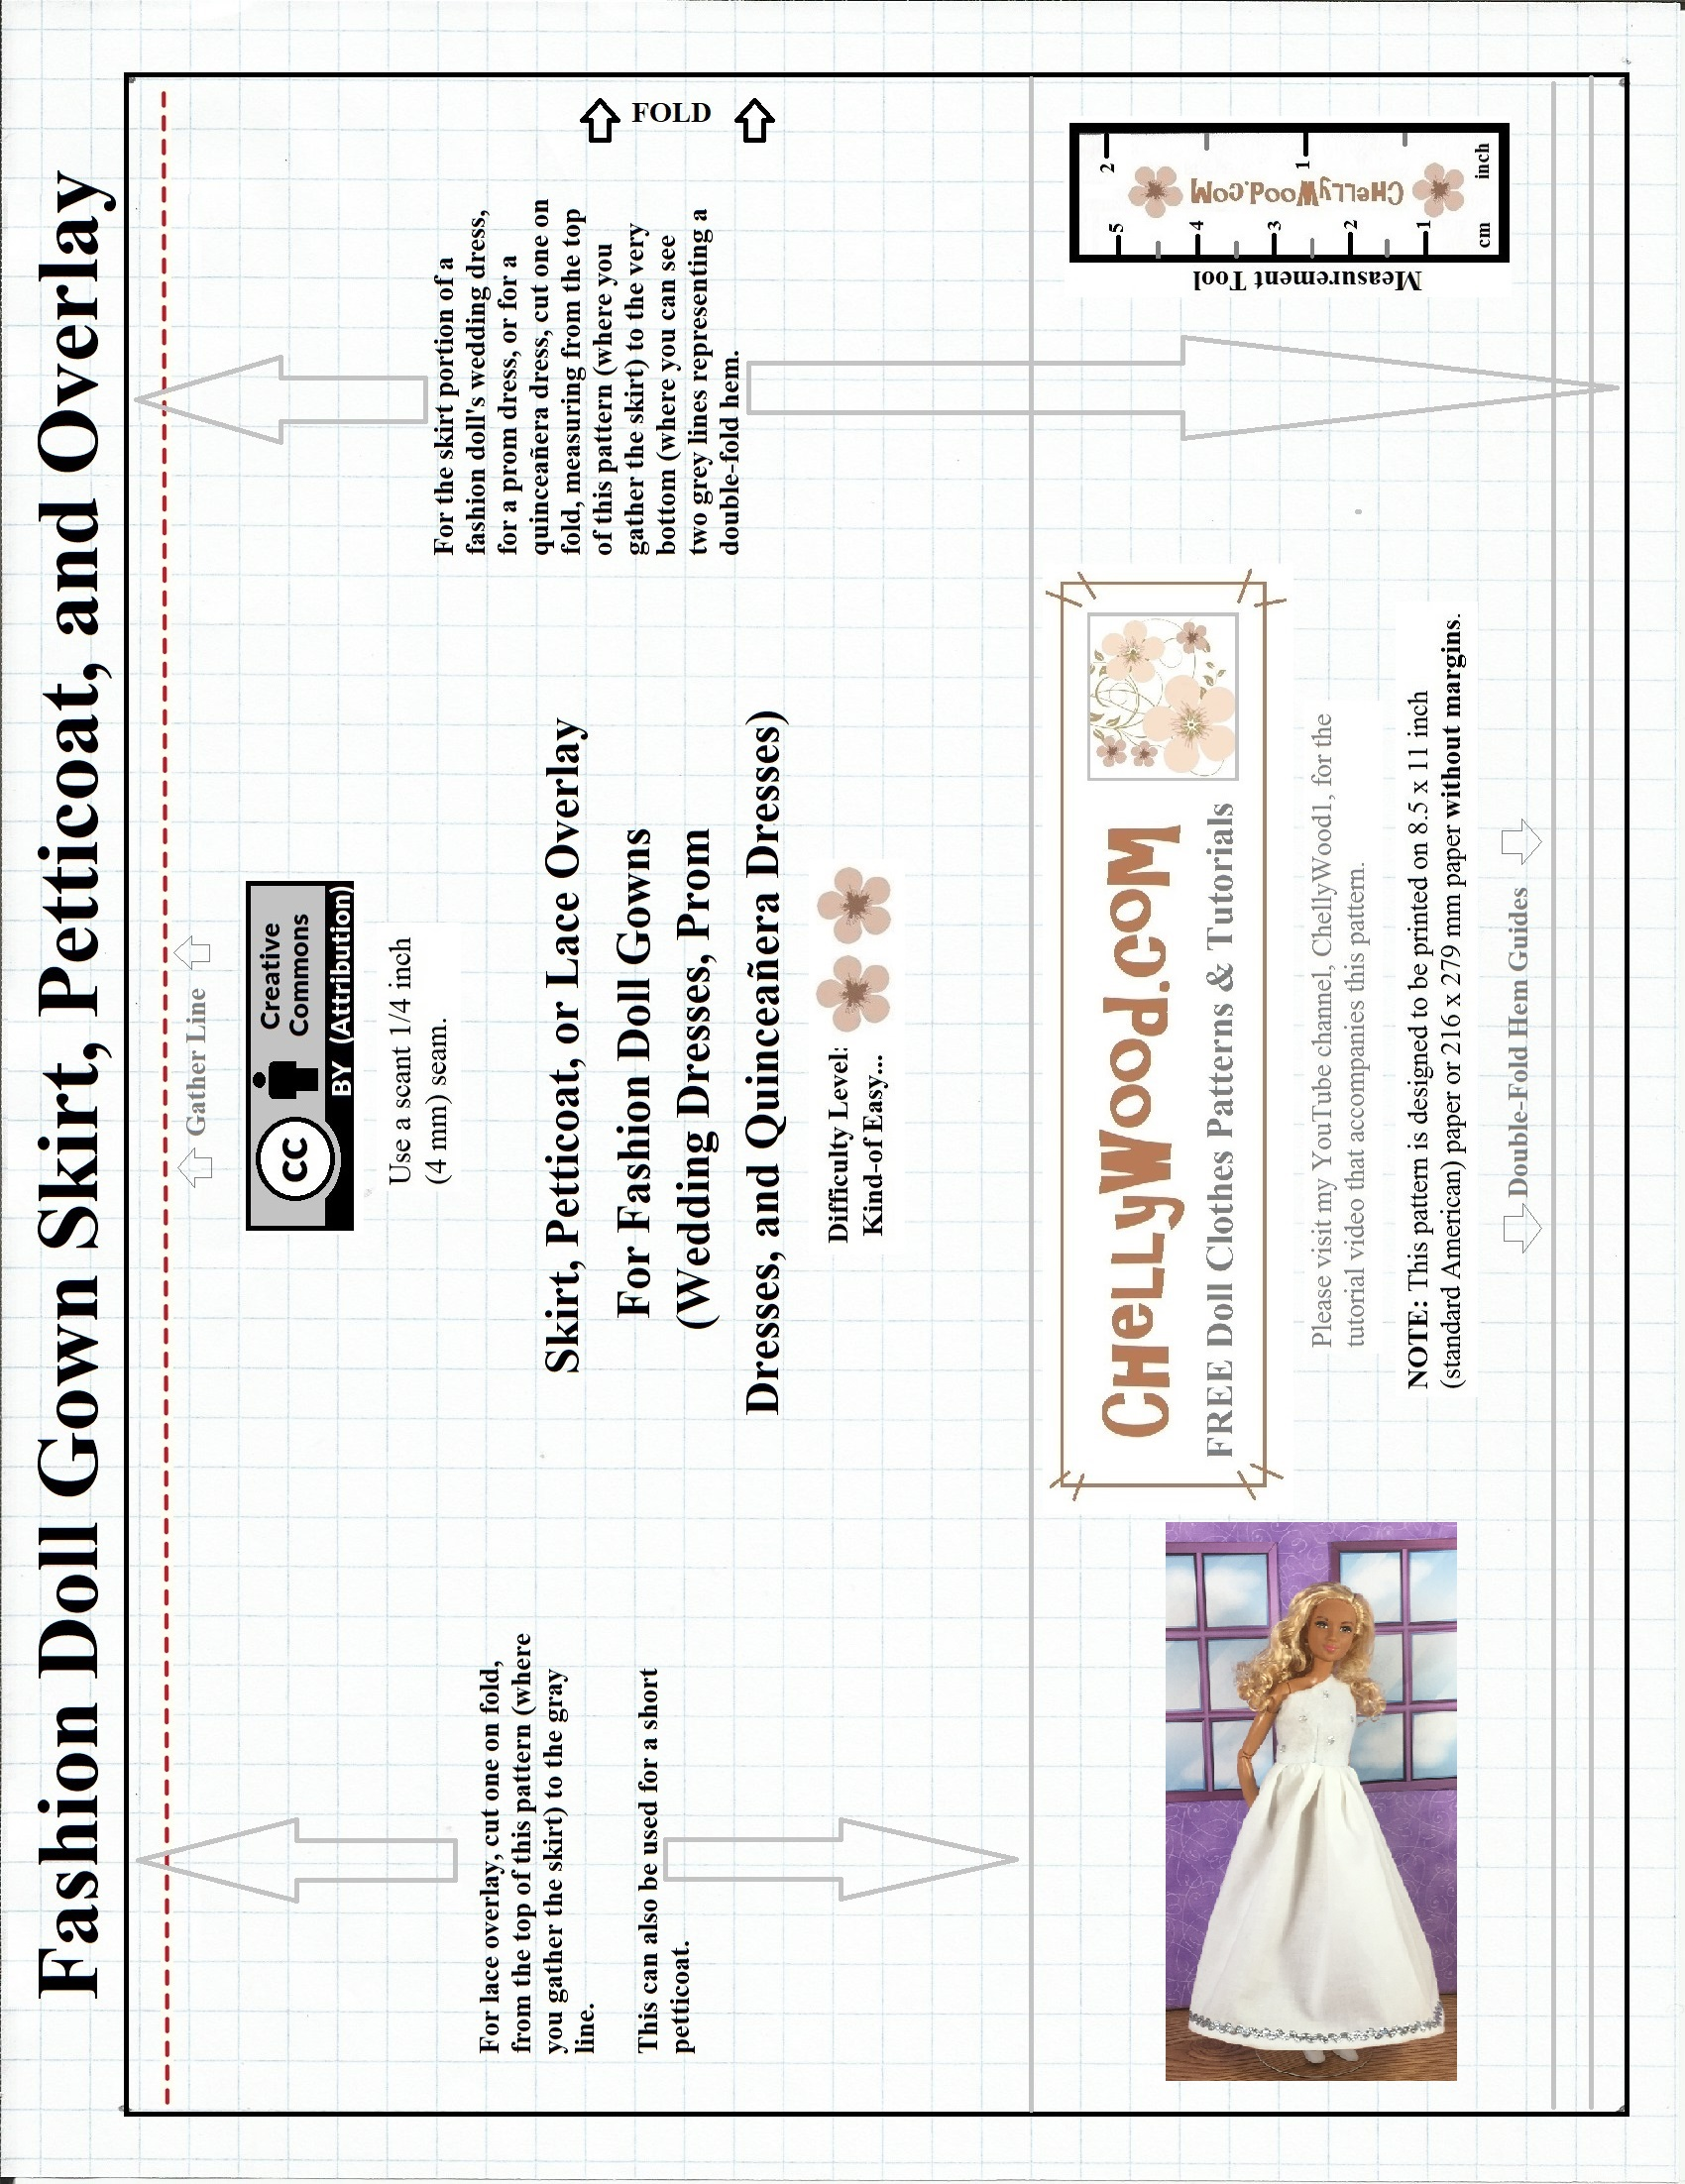 Sewing Guides Vintage Machine Threading Stitch Nerd Image Shows A Free Printable Pattern For Fashion Doll Wedding Gown Skirt 551x714